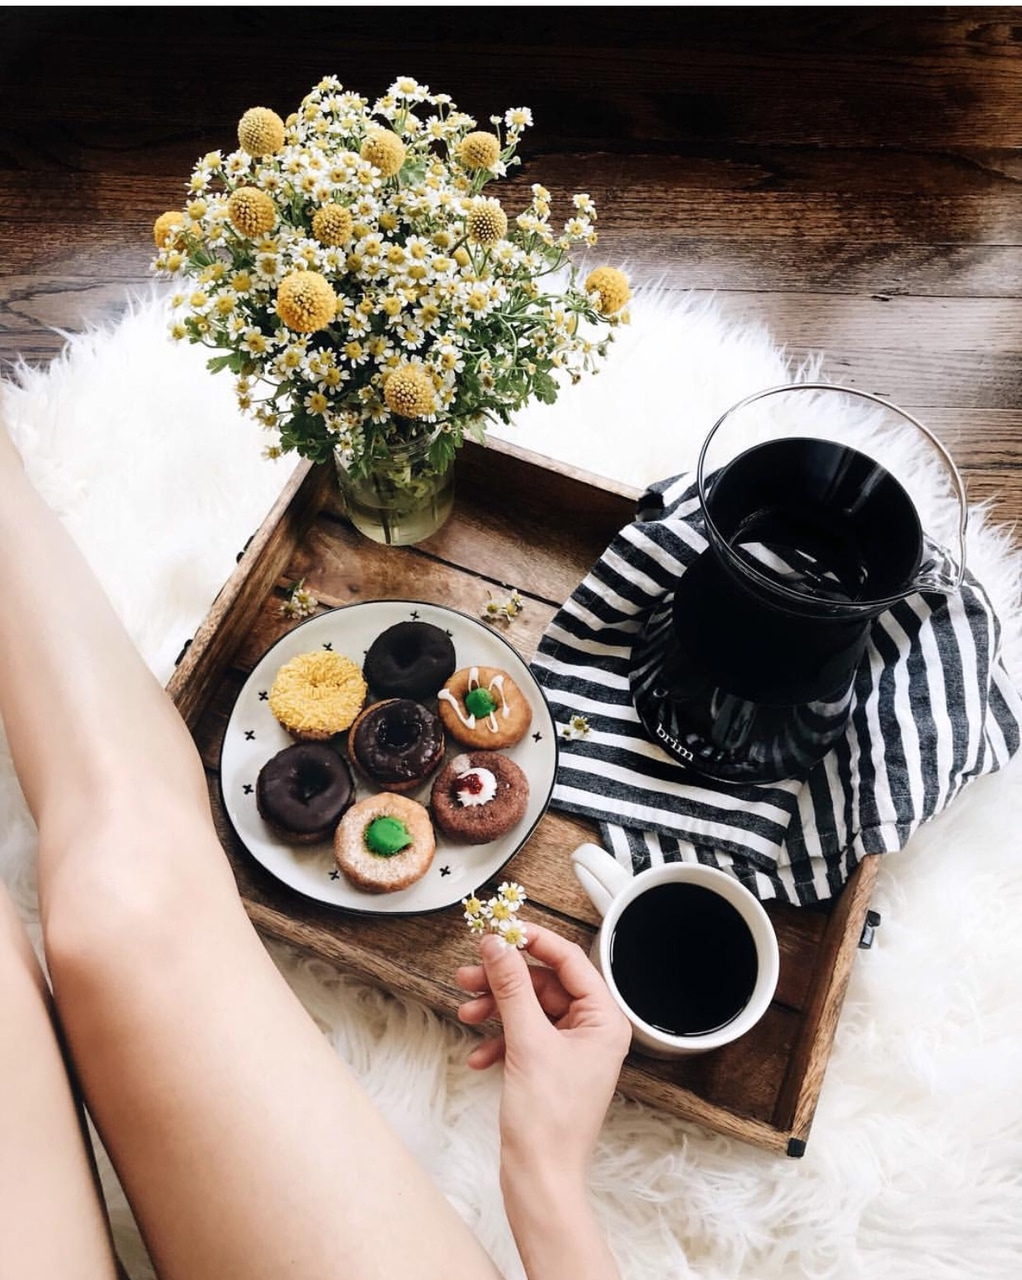 desserts, coffee, flowers and sweets